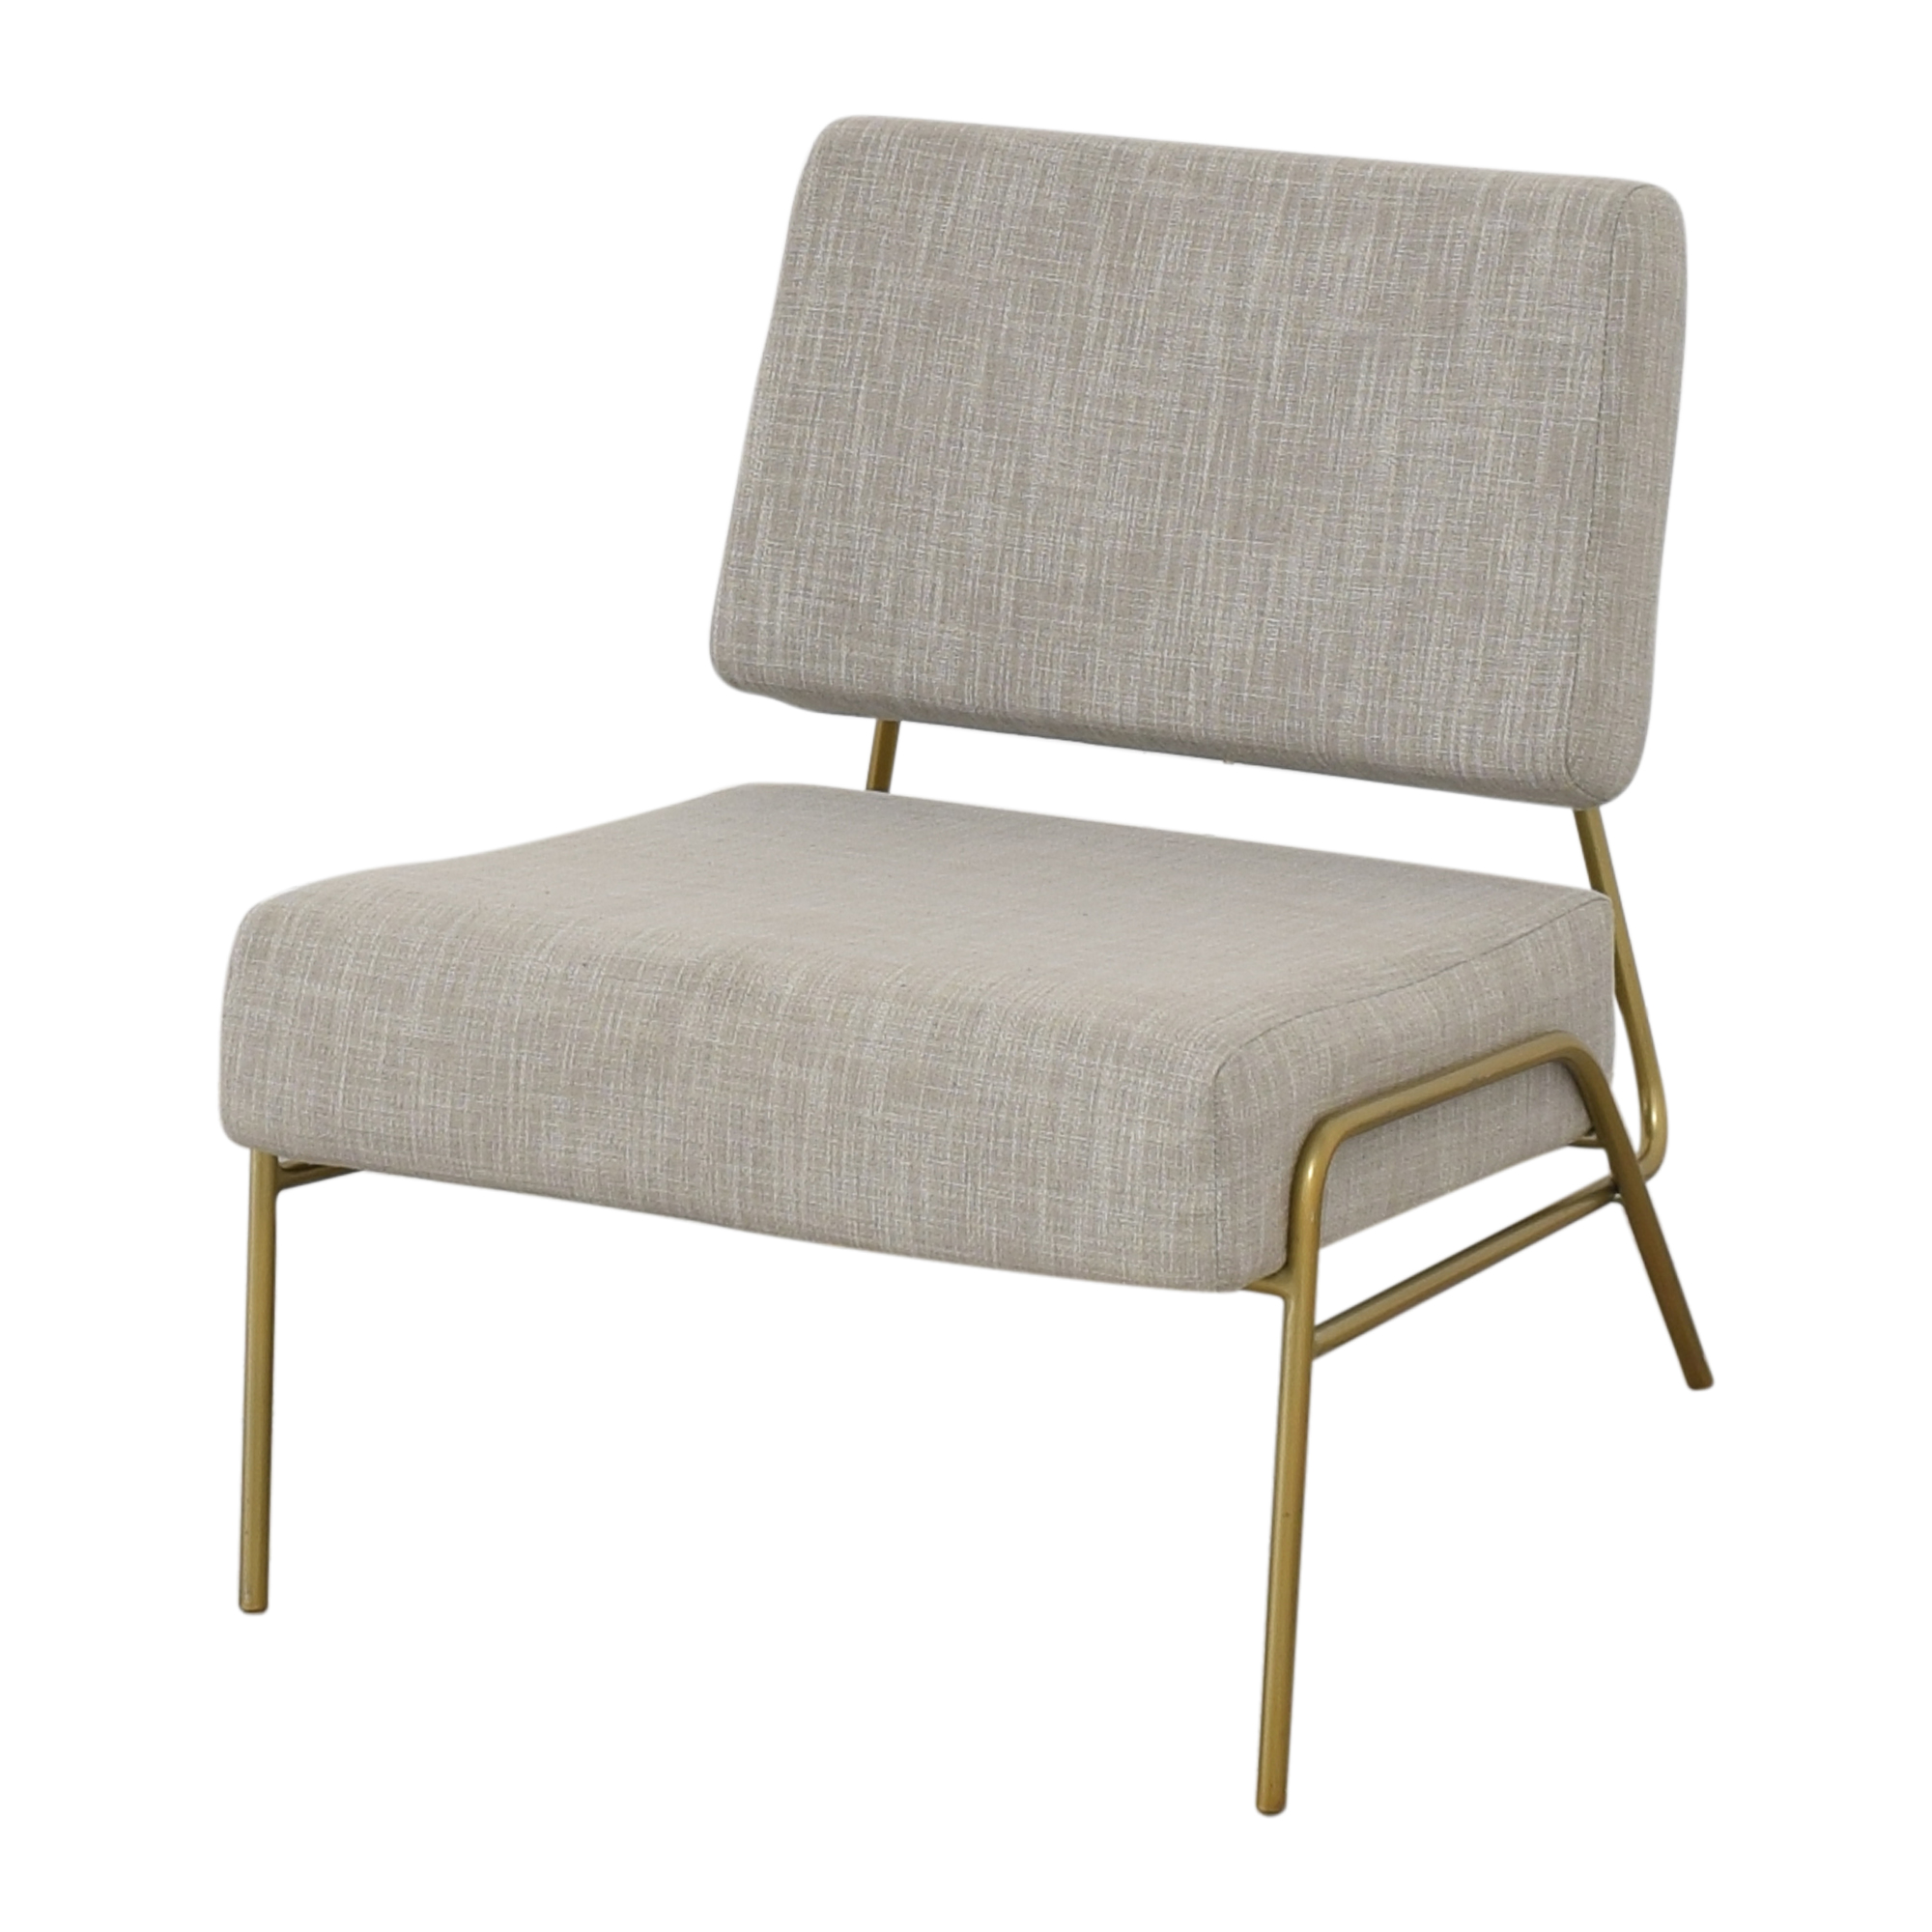 West Elm West Elm Wire Frame Slipper Chair on sale